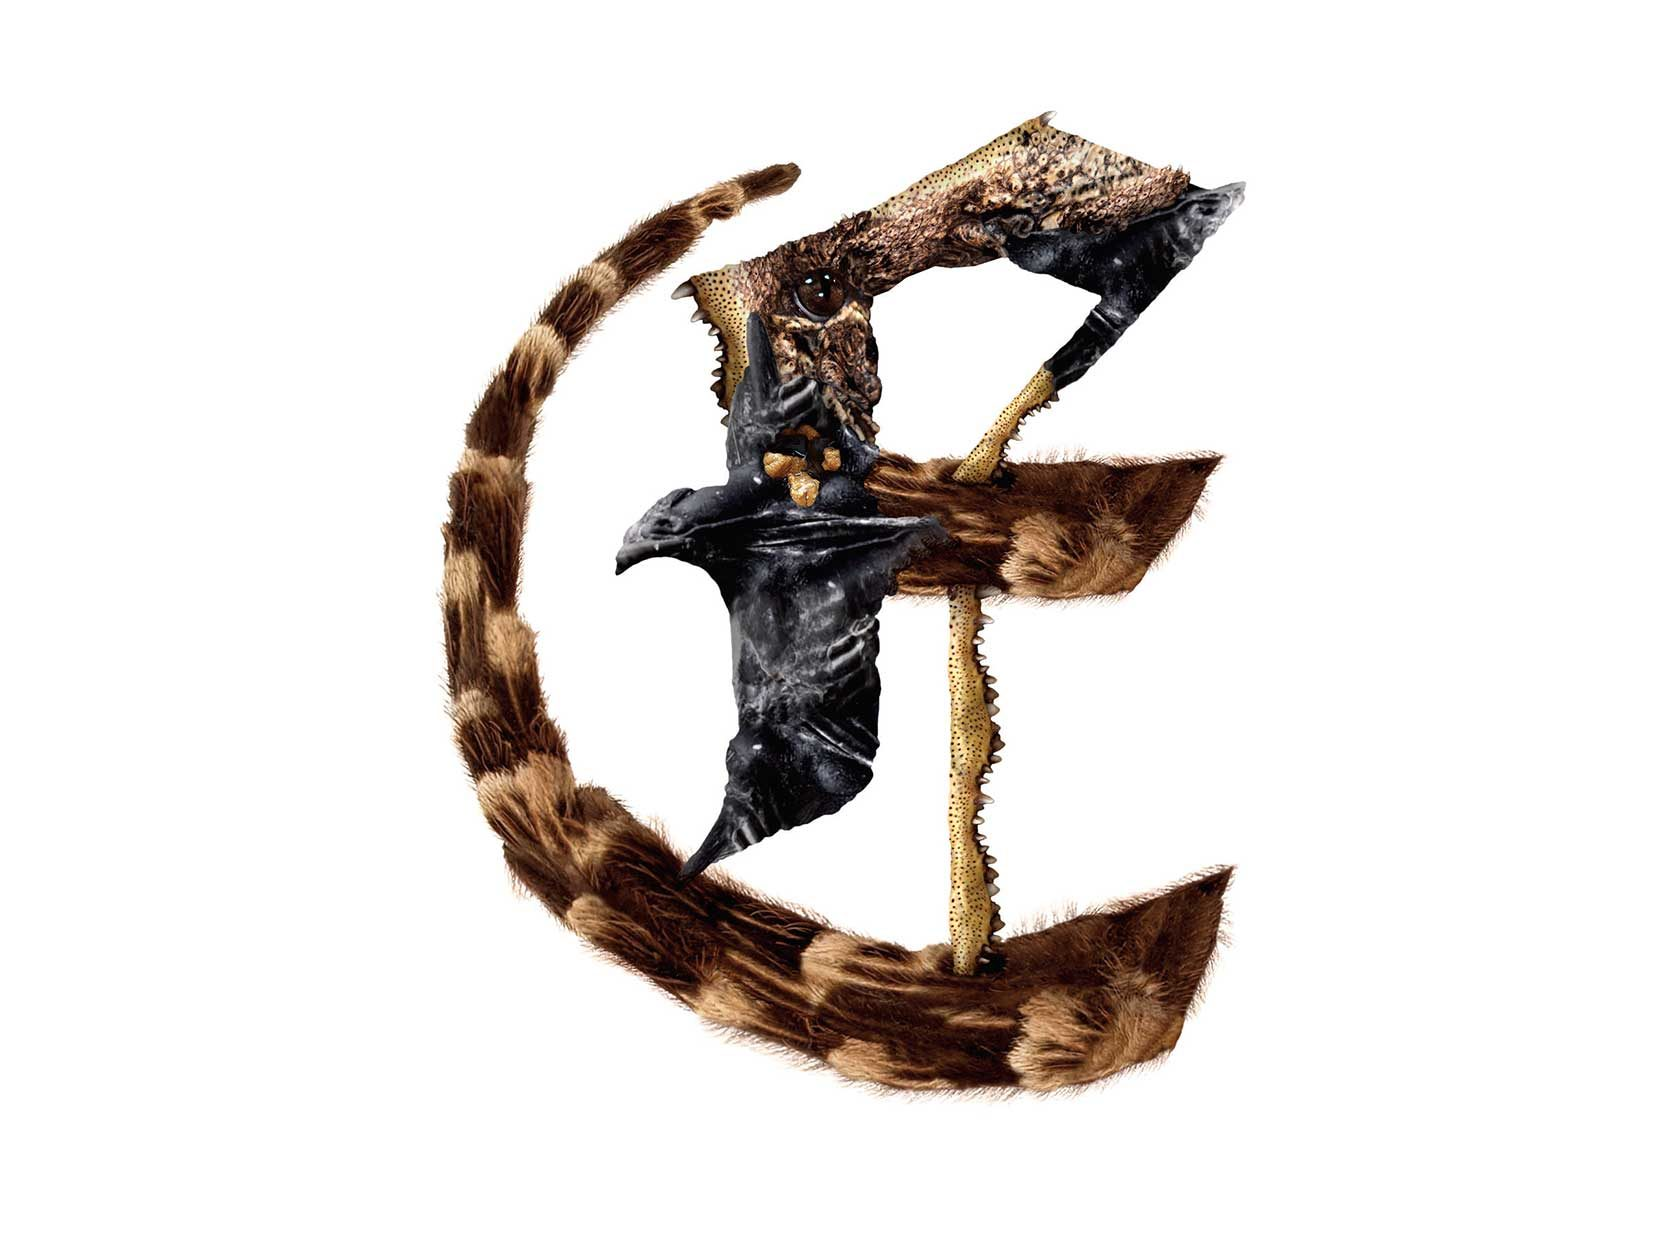 Bird Headed Monster Letter E Design by Furia